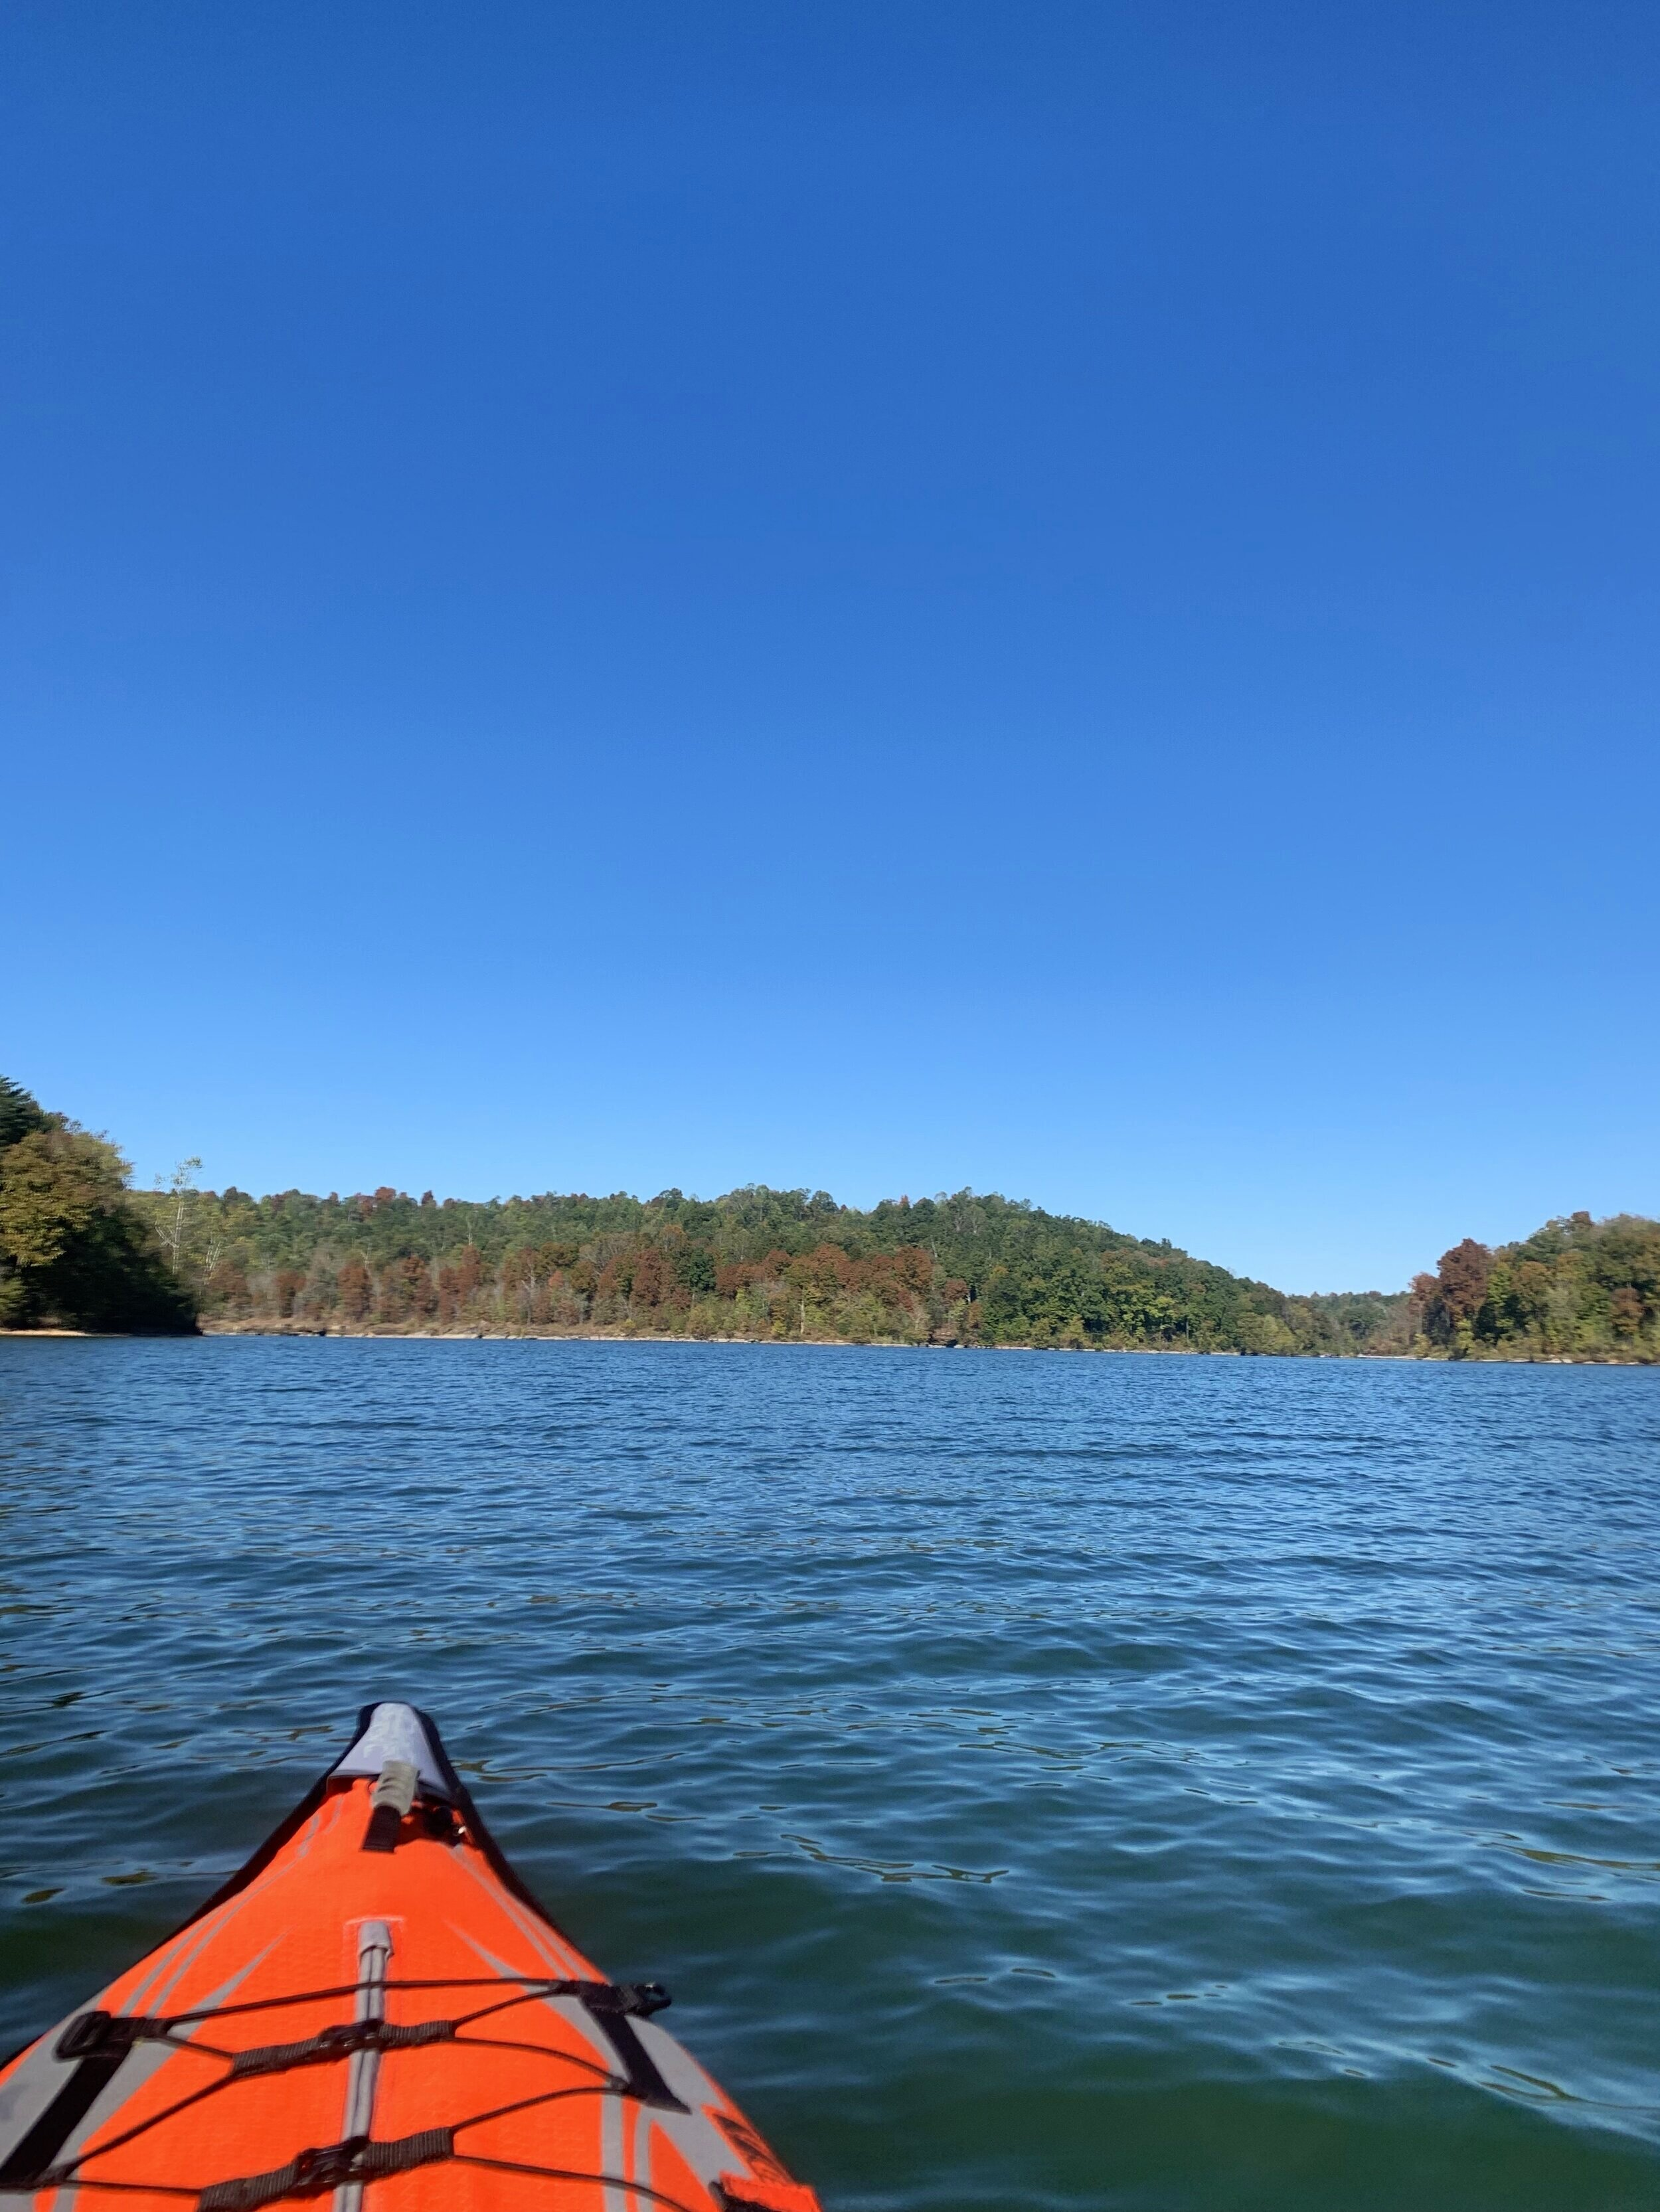 The weather was very good and we were able to get out on the kayaks on 3 different days.